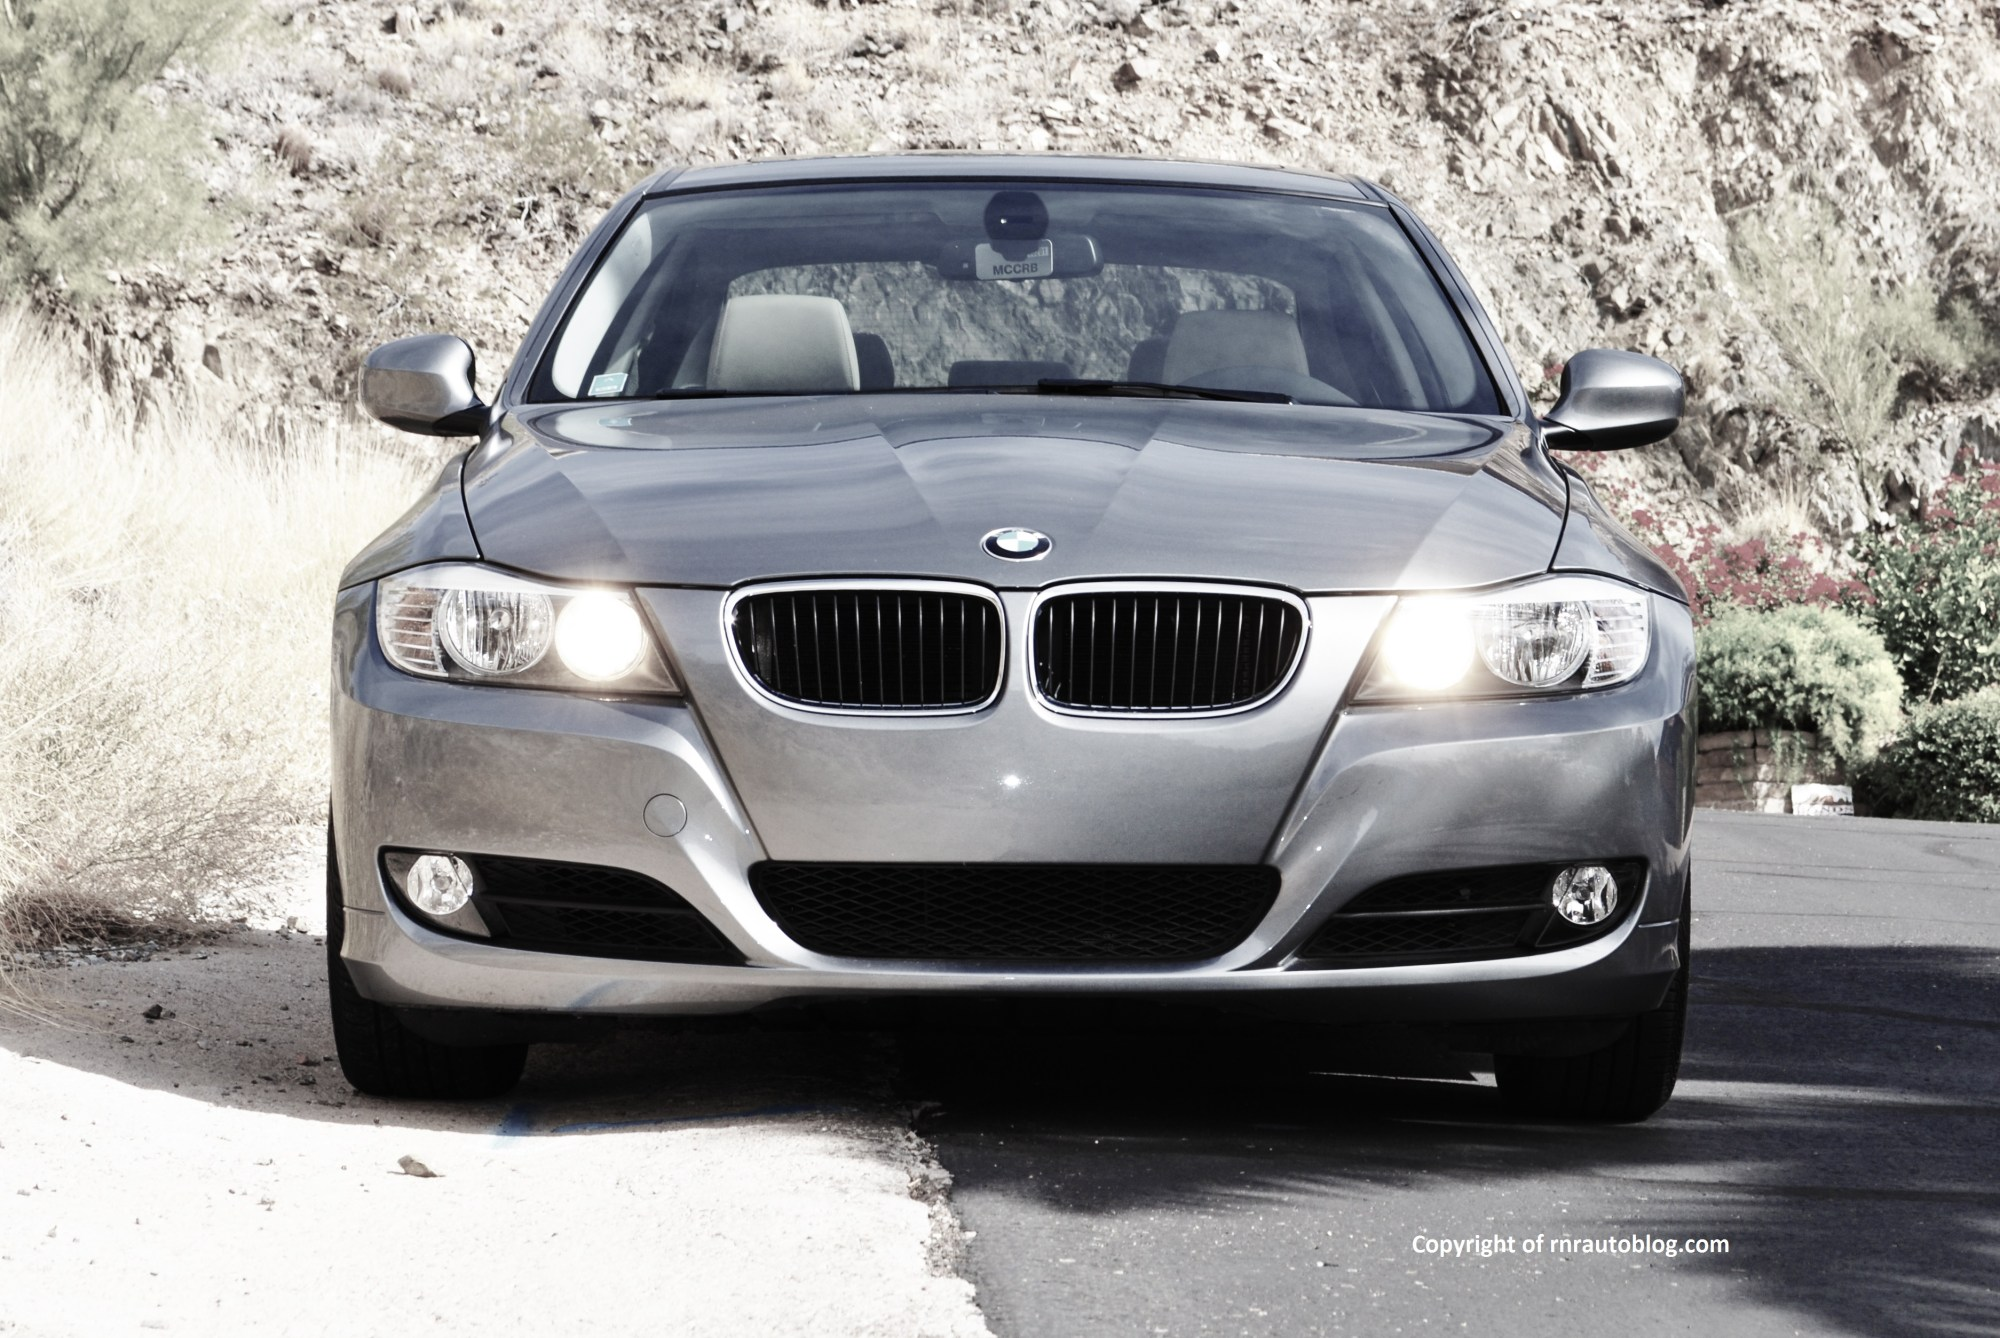 hight resolution of 2010 bmw 328i review dsc 0019 finsihed